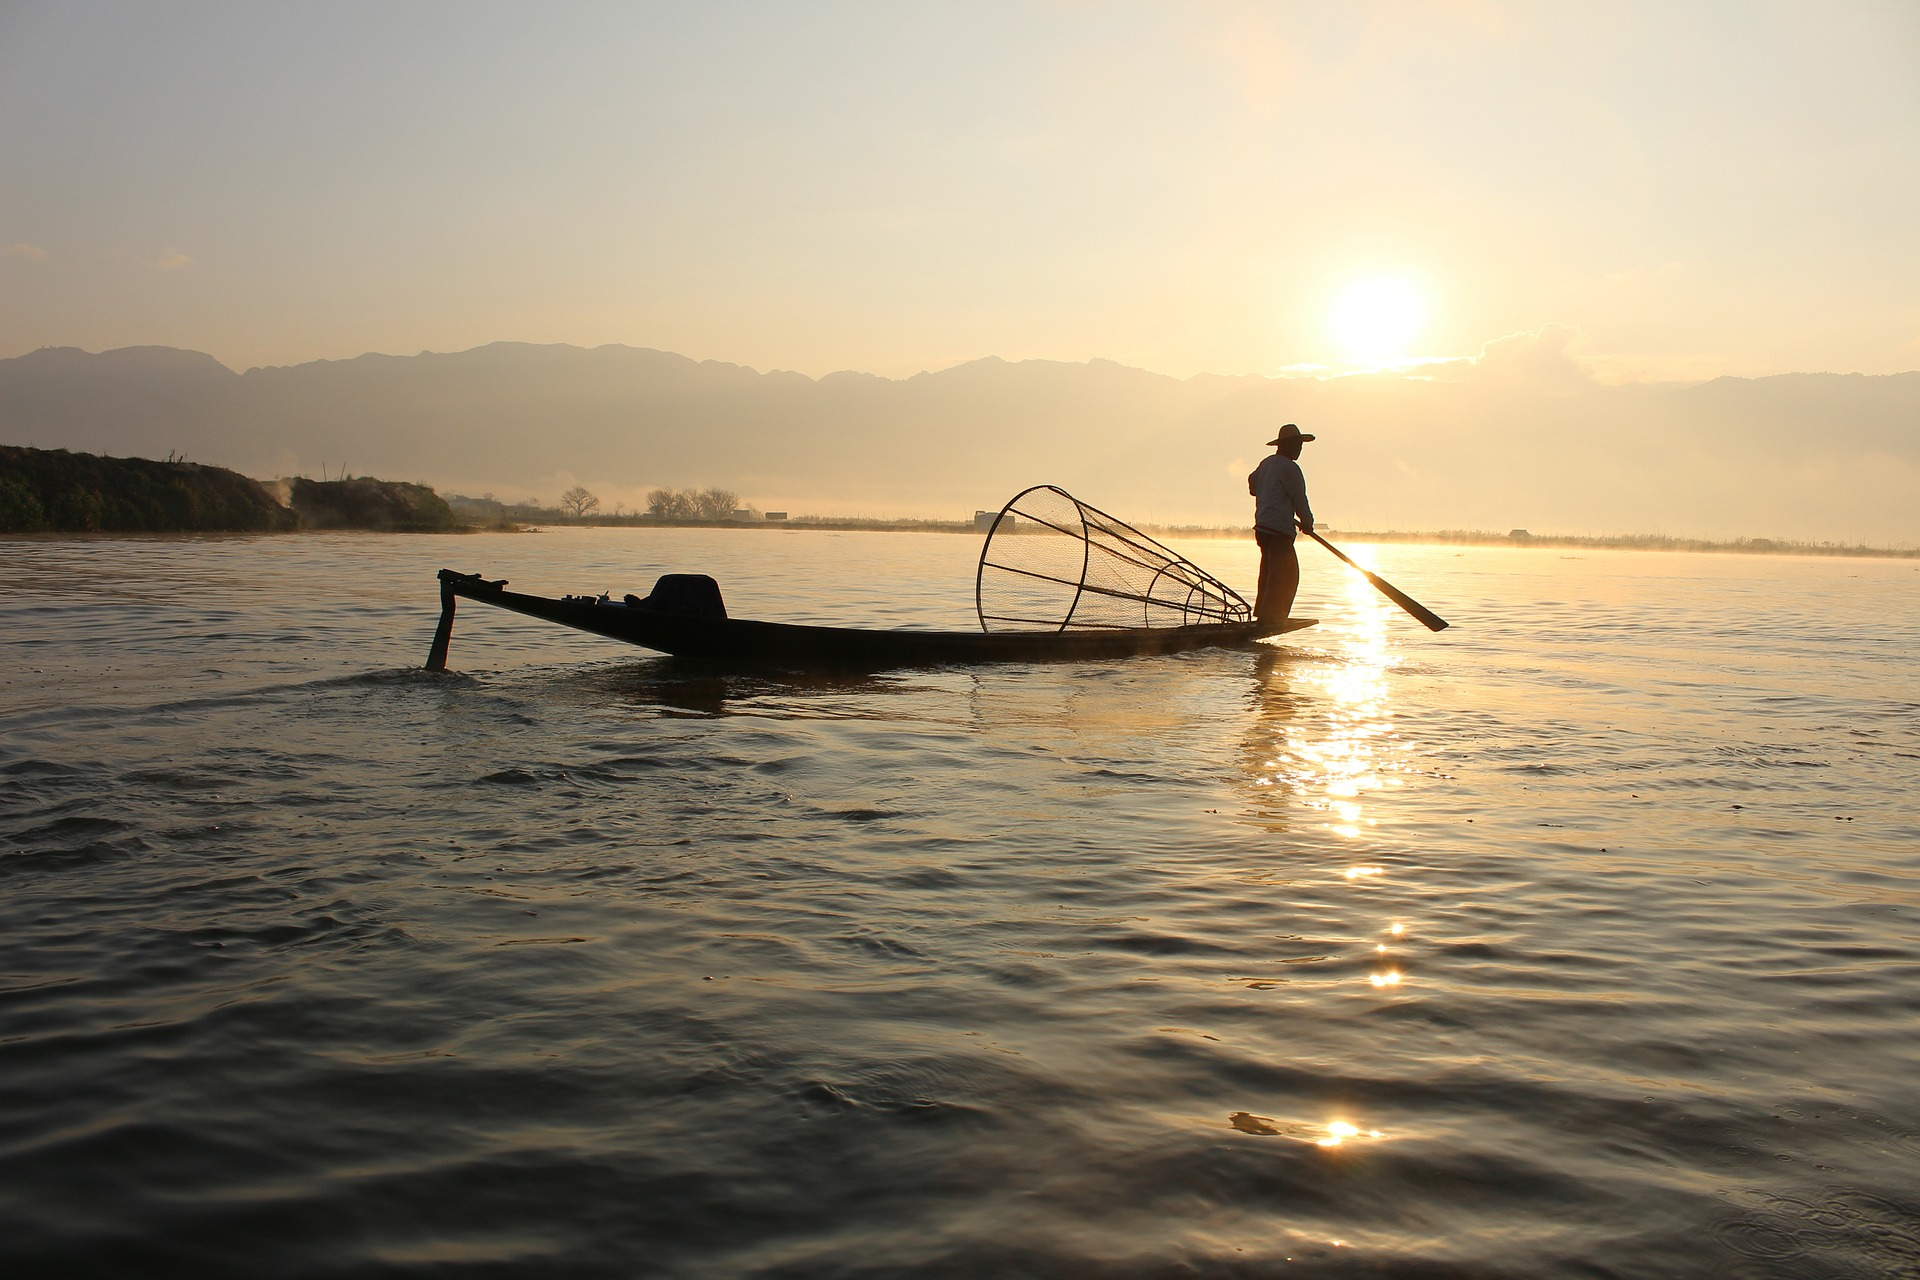 A fisherman in his boat on the Lake Inle